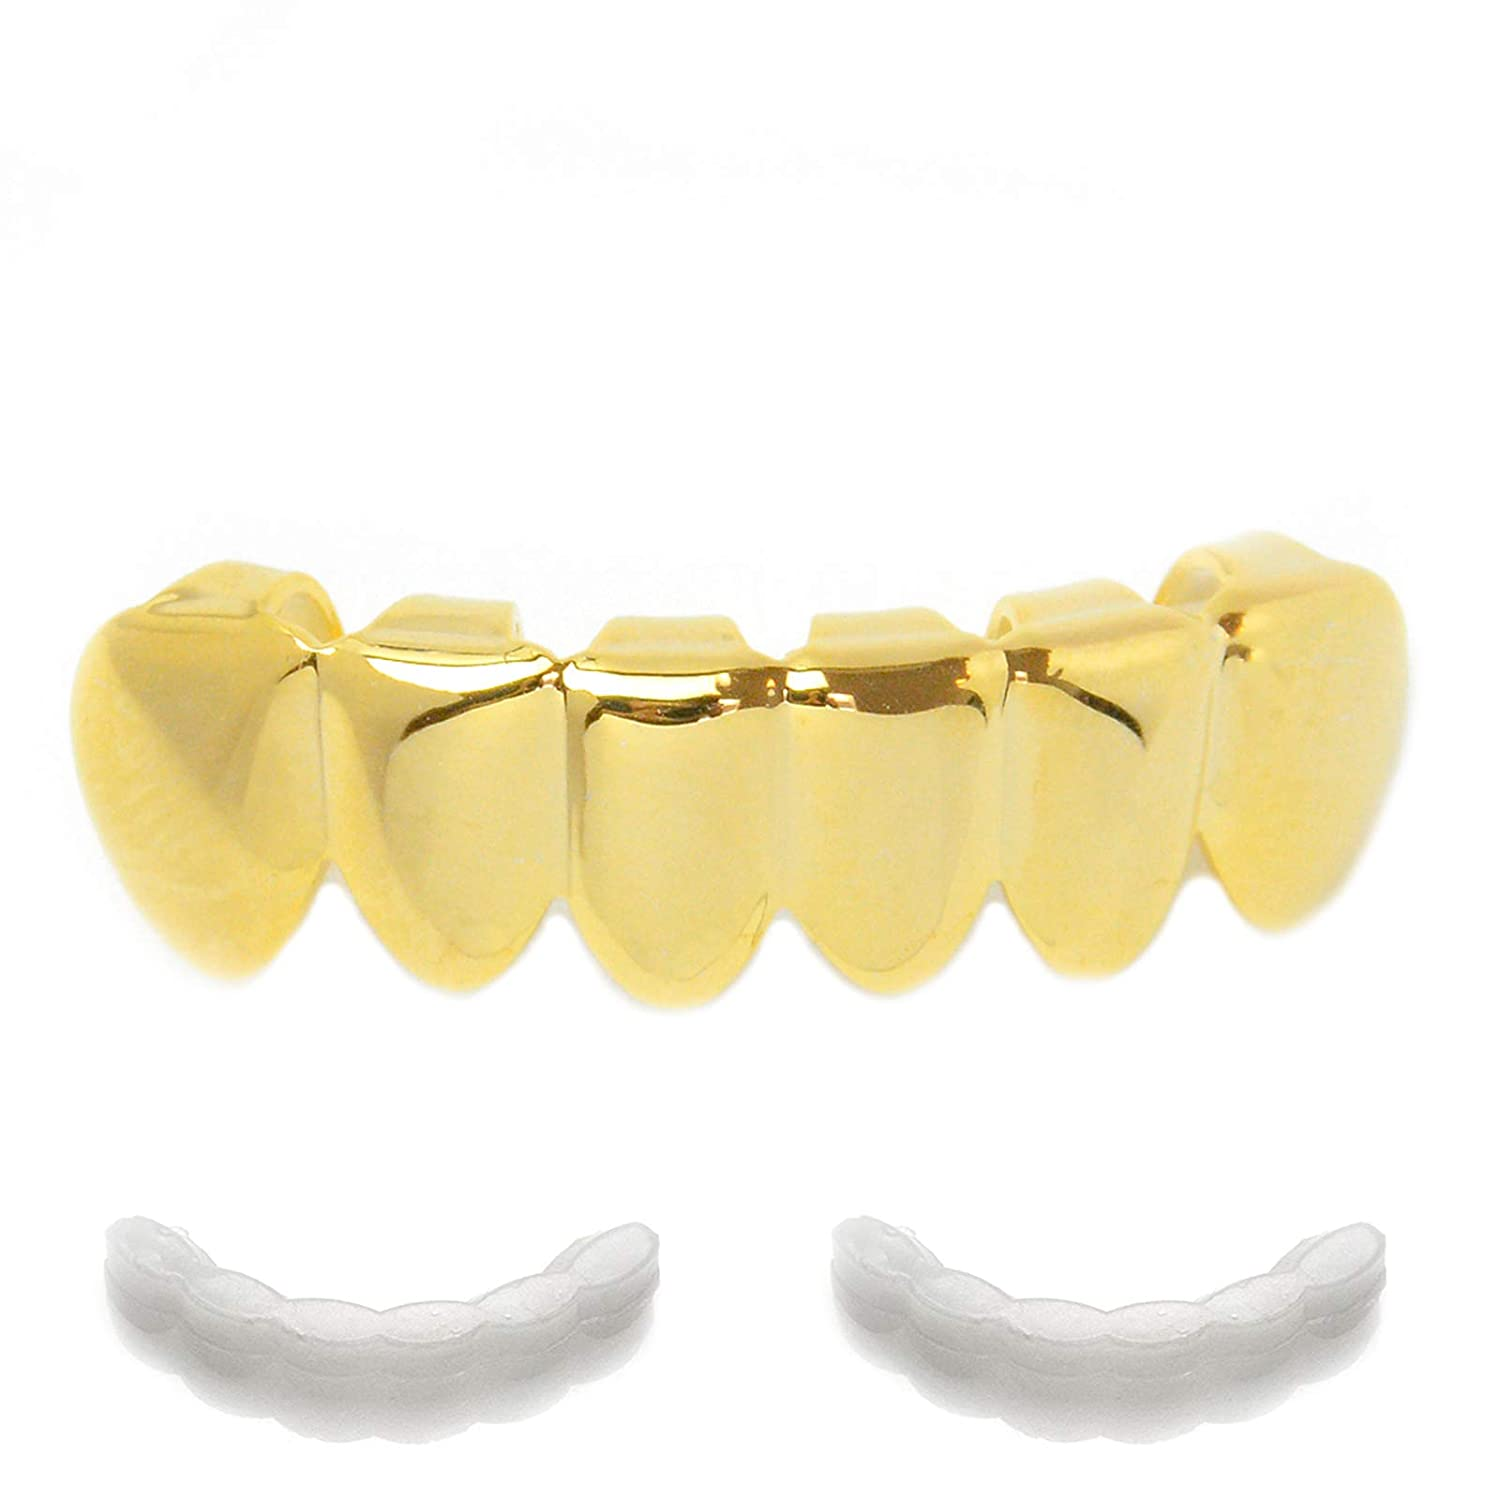 GRILLZ Plain Bottom Teeth with 2pc molding Made IN KOREA S 001 G